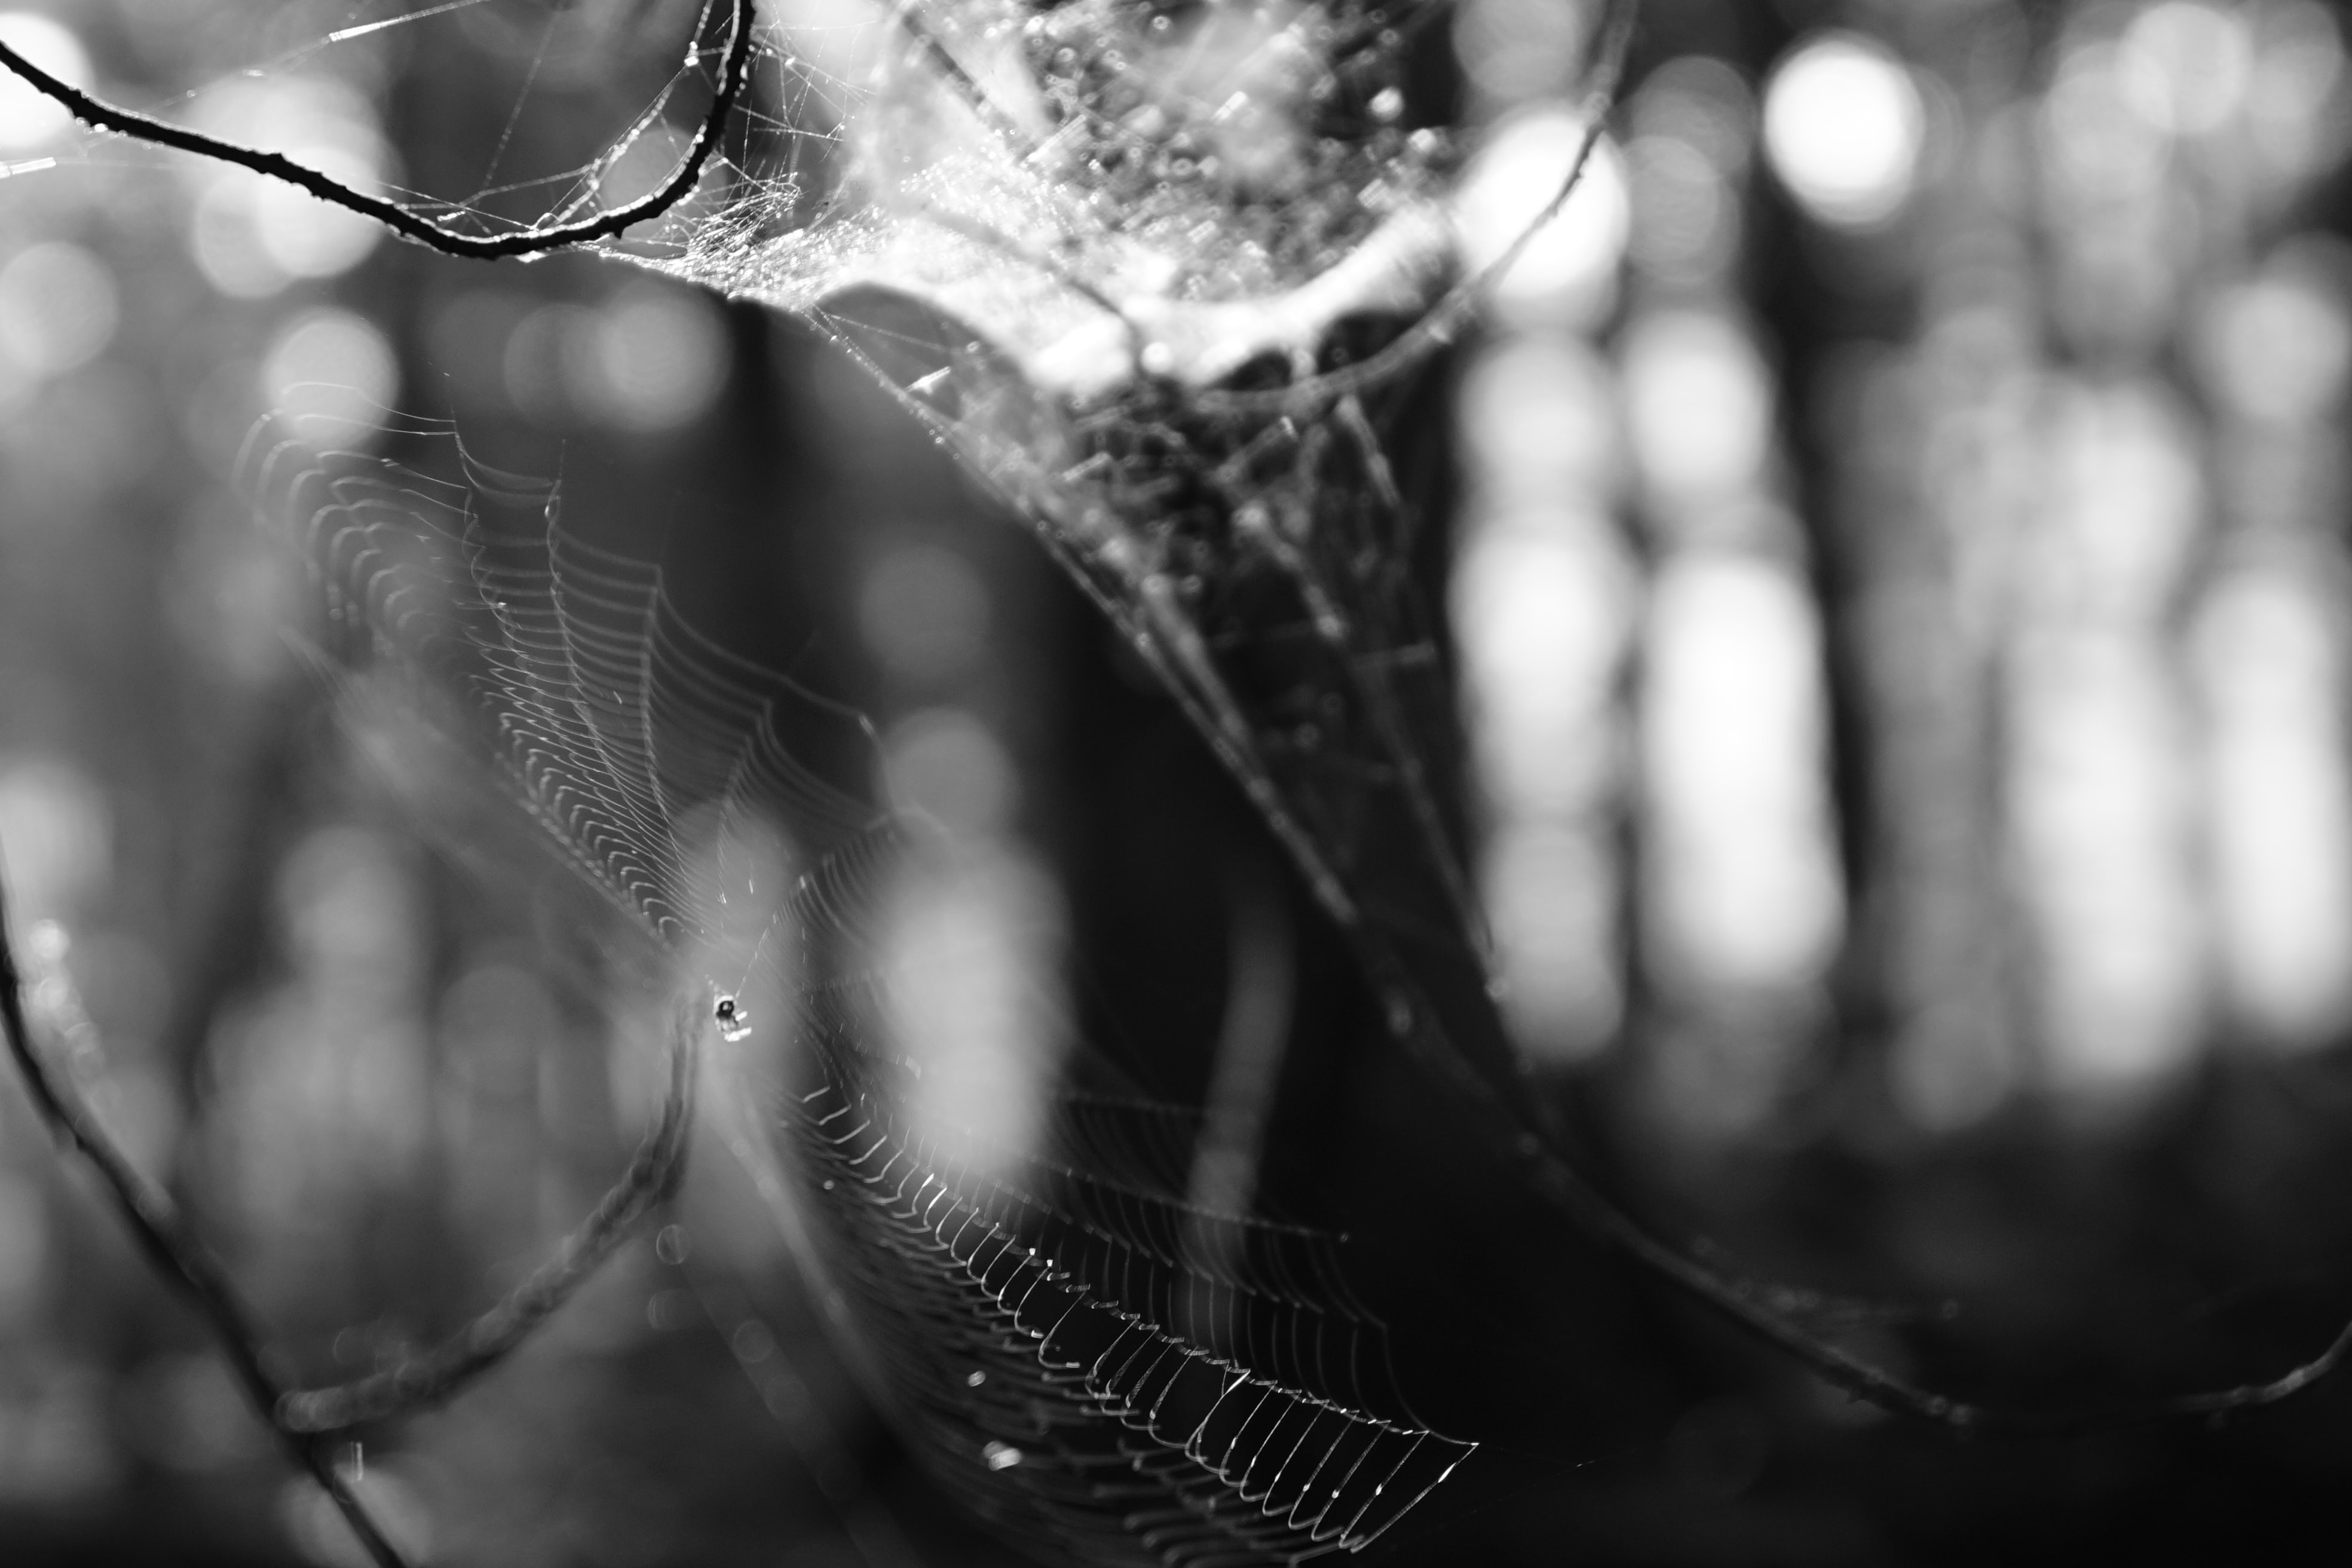 grayscale photography of spiderweb